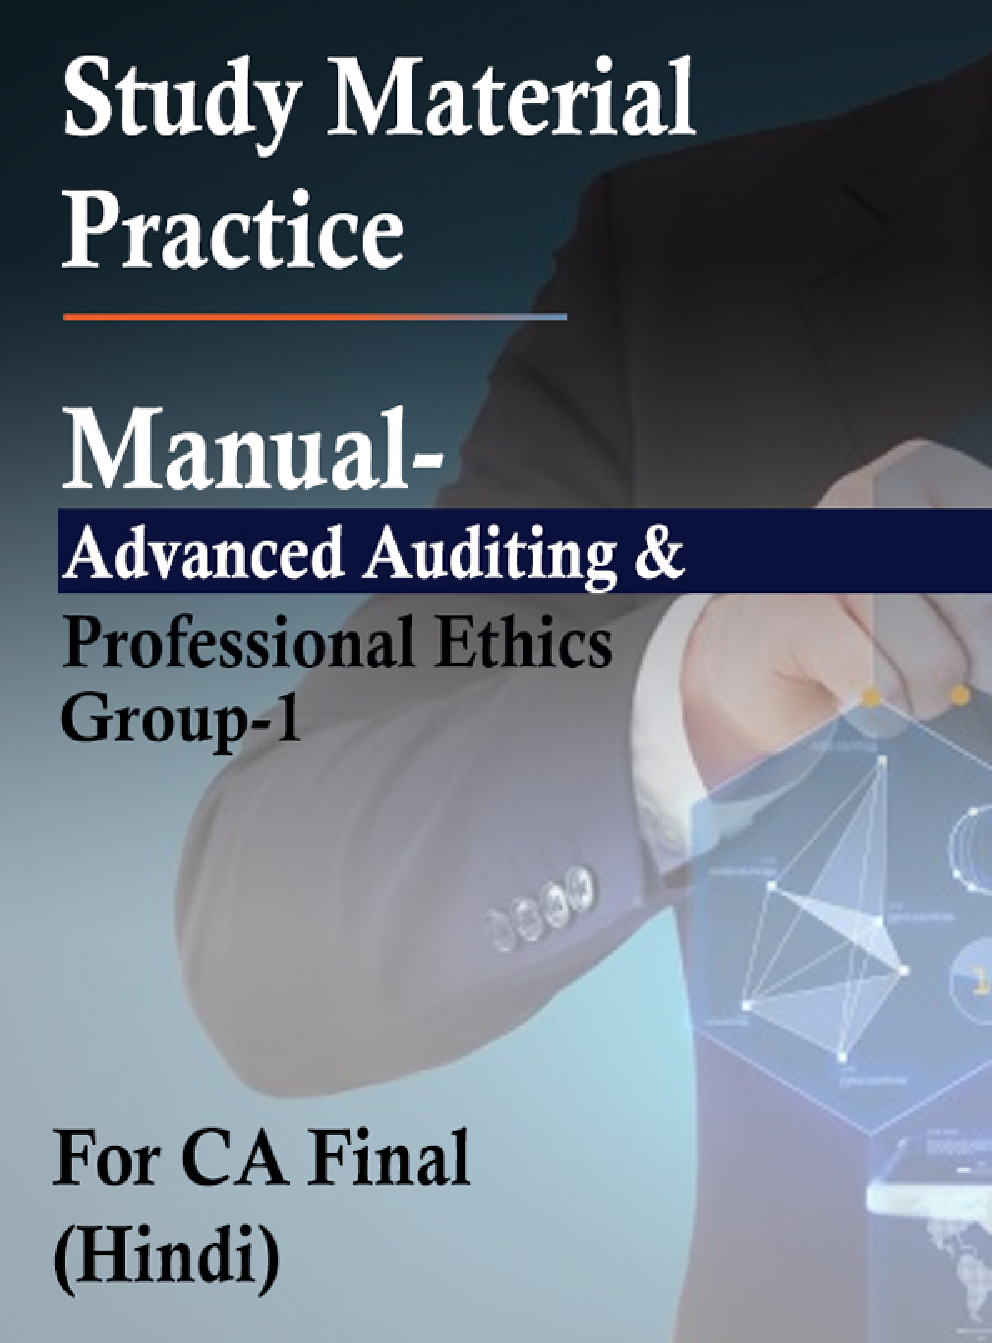 Study Material Practice Manual Advanced Auditing And Professional Ethics Group-1 For CA Final 2018 (Hindi) - Page 1